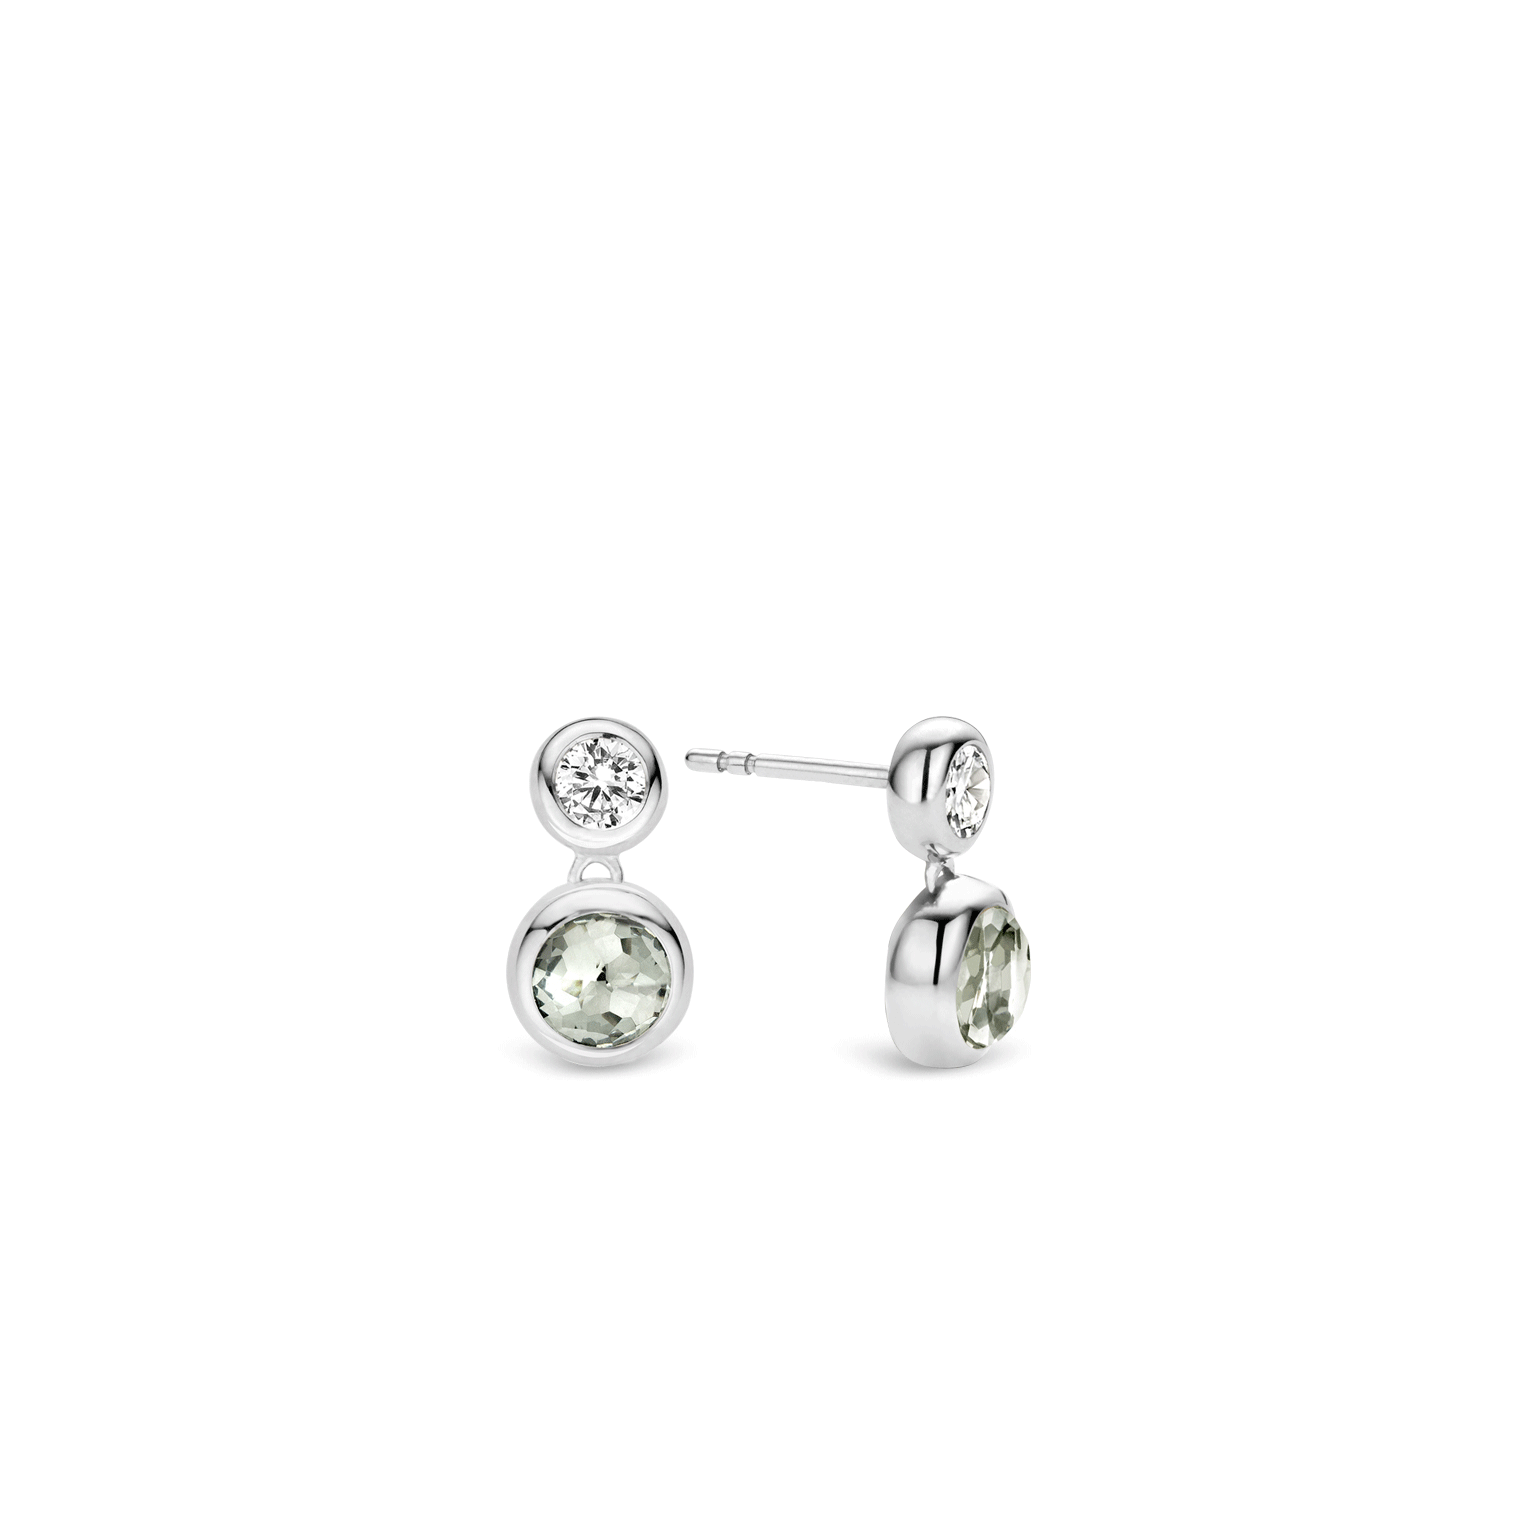 TI SENTO Milano Rhodium Plated Sterling Silver Earrings 7746GG dVLpYlGg